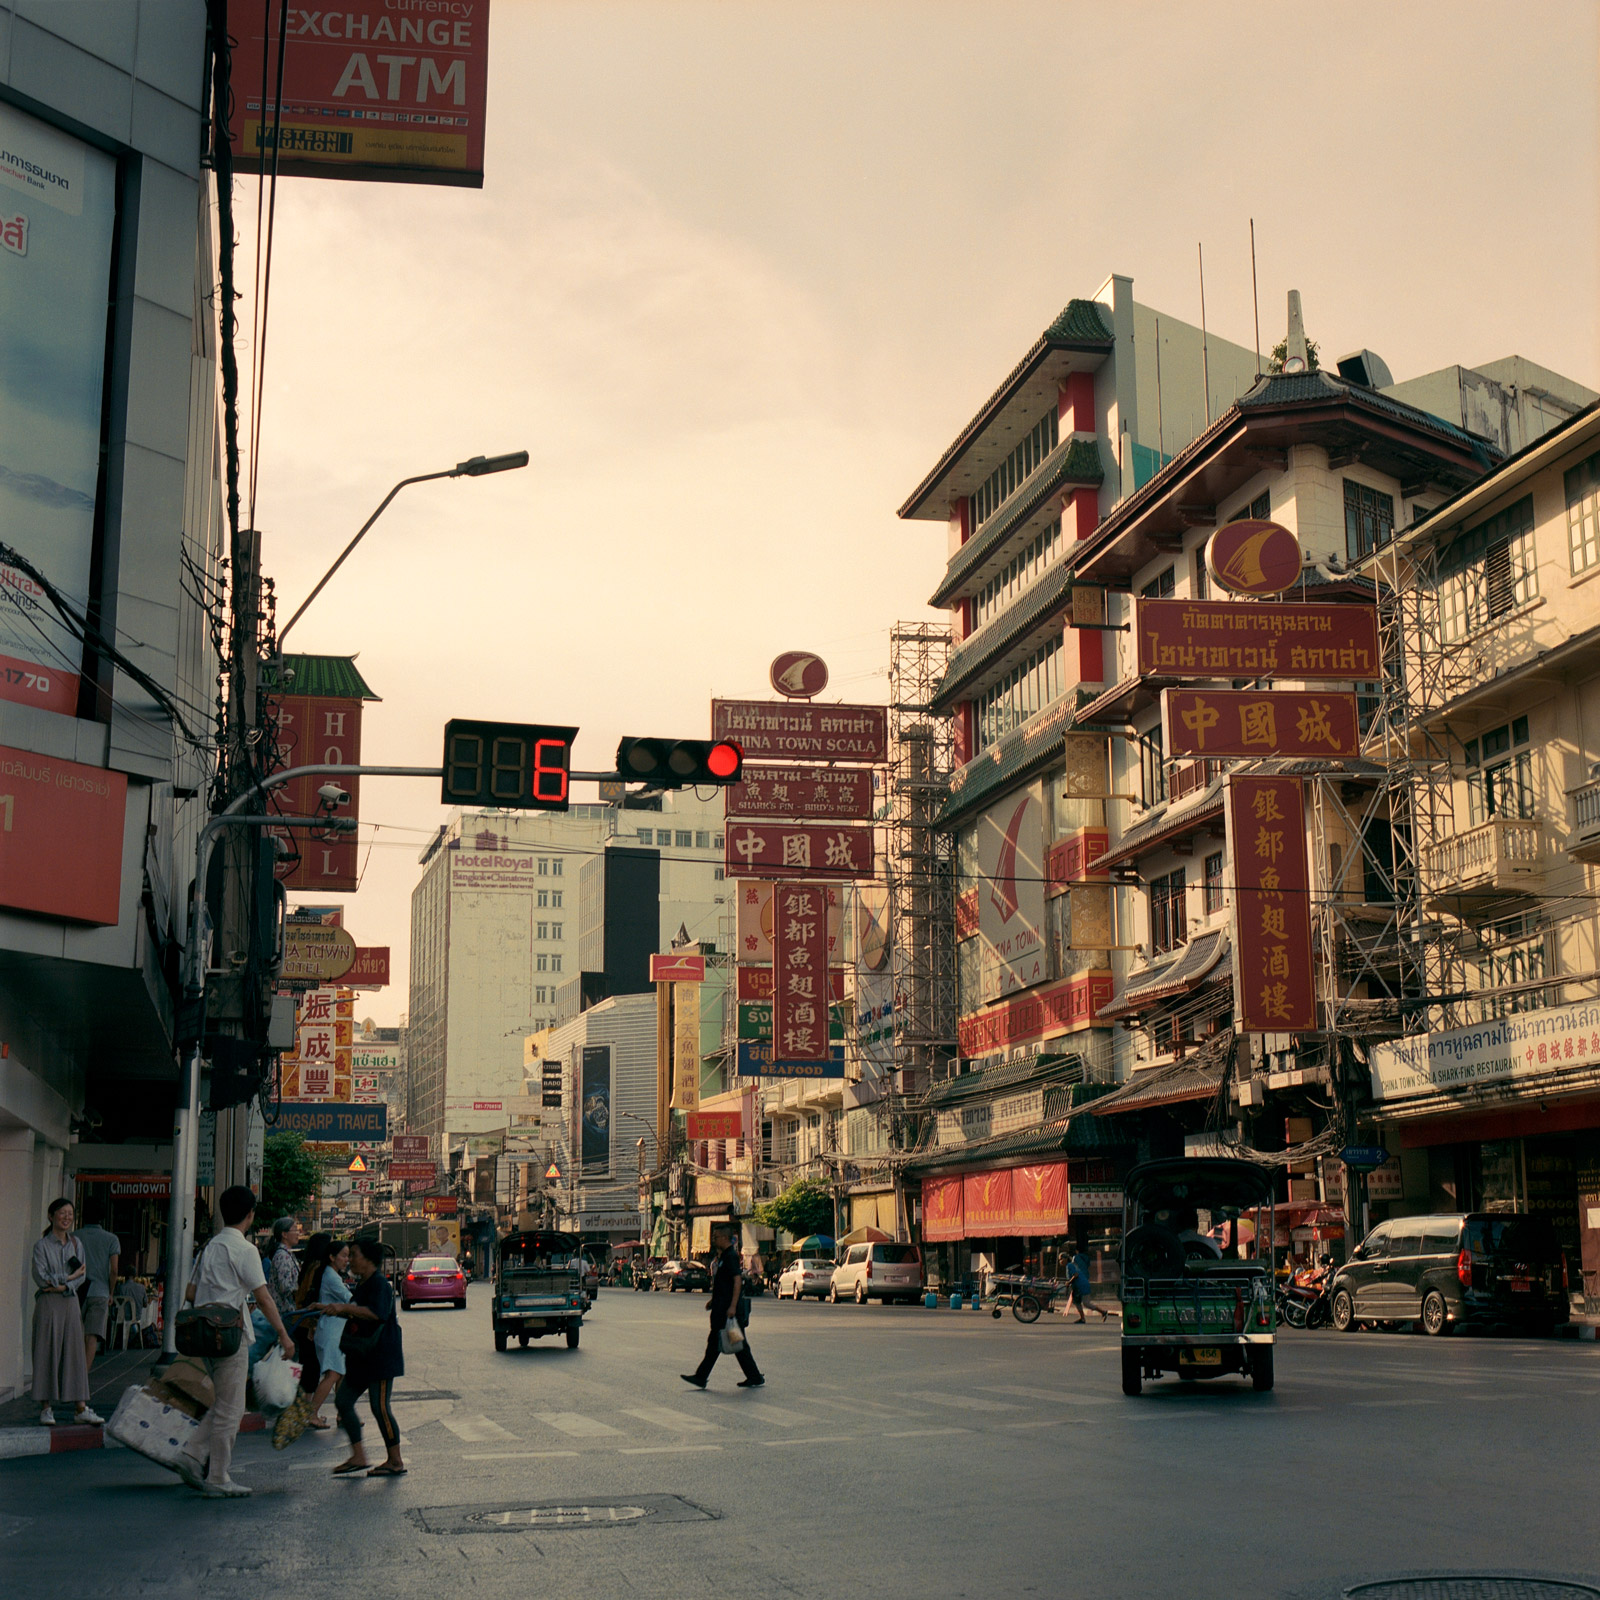 Street scene in Chinatown, Bangkok, Thailand, Eastern Travels, Photography by Ioannis Koussertari